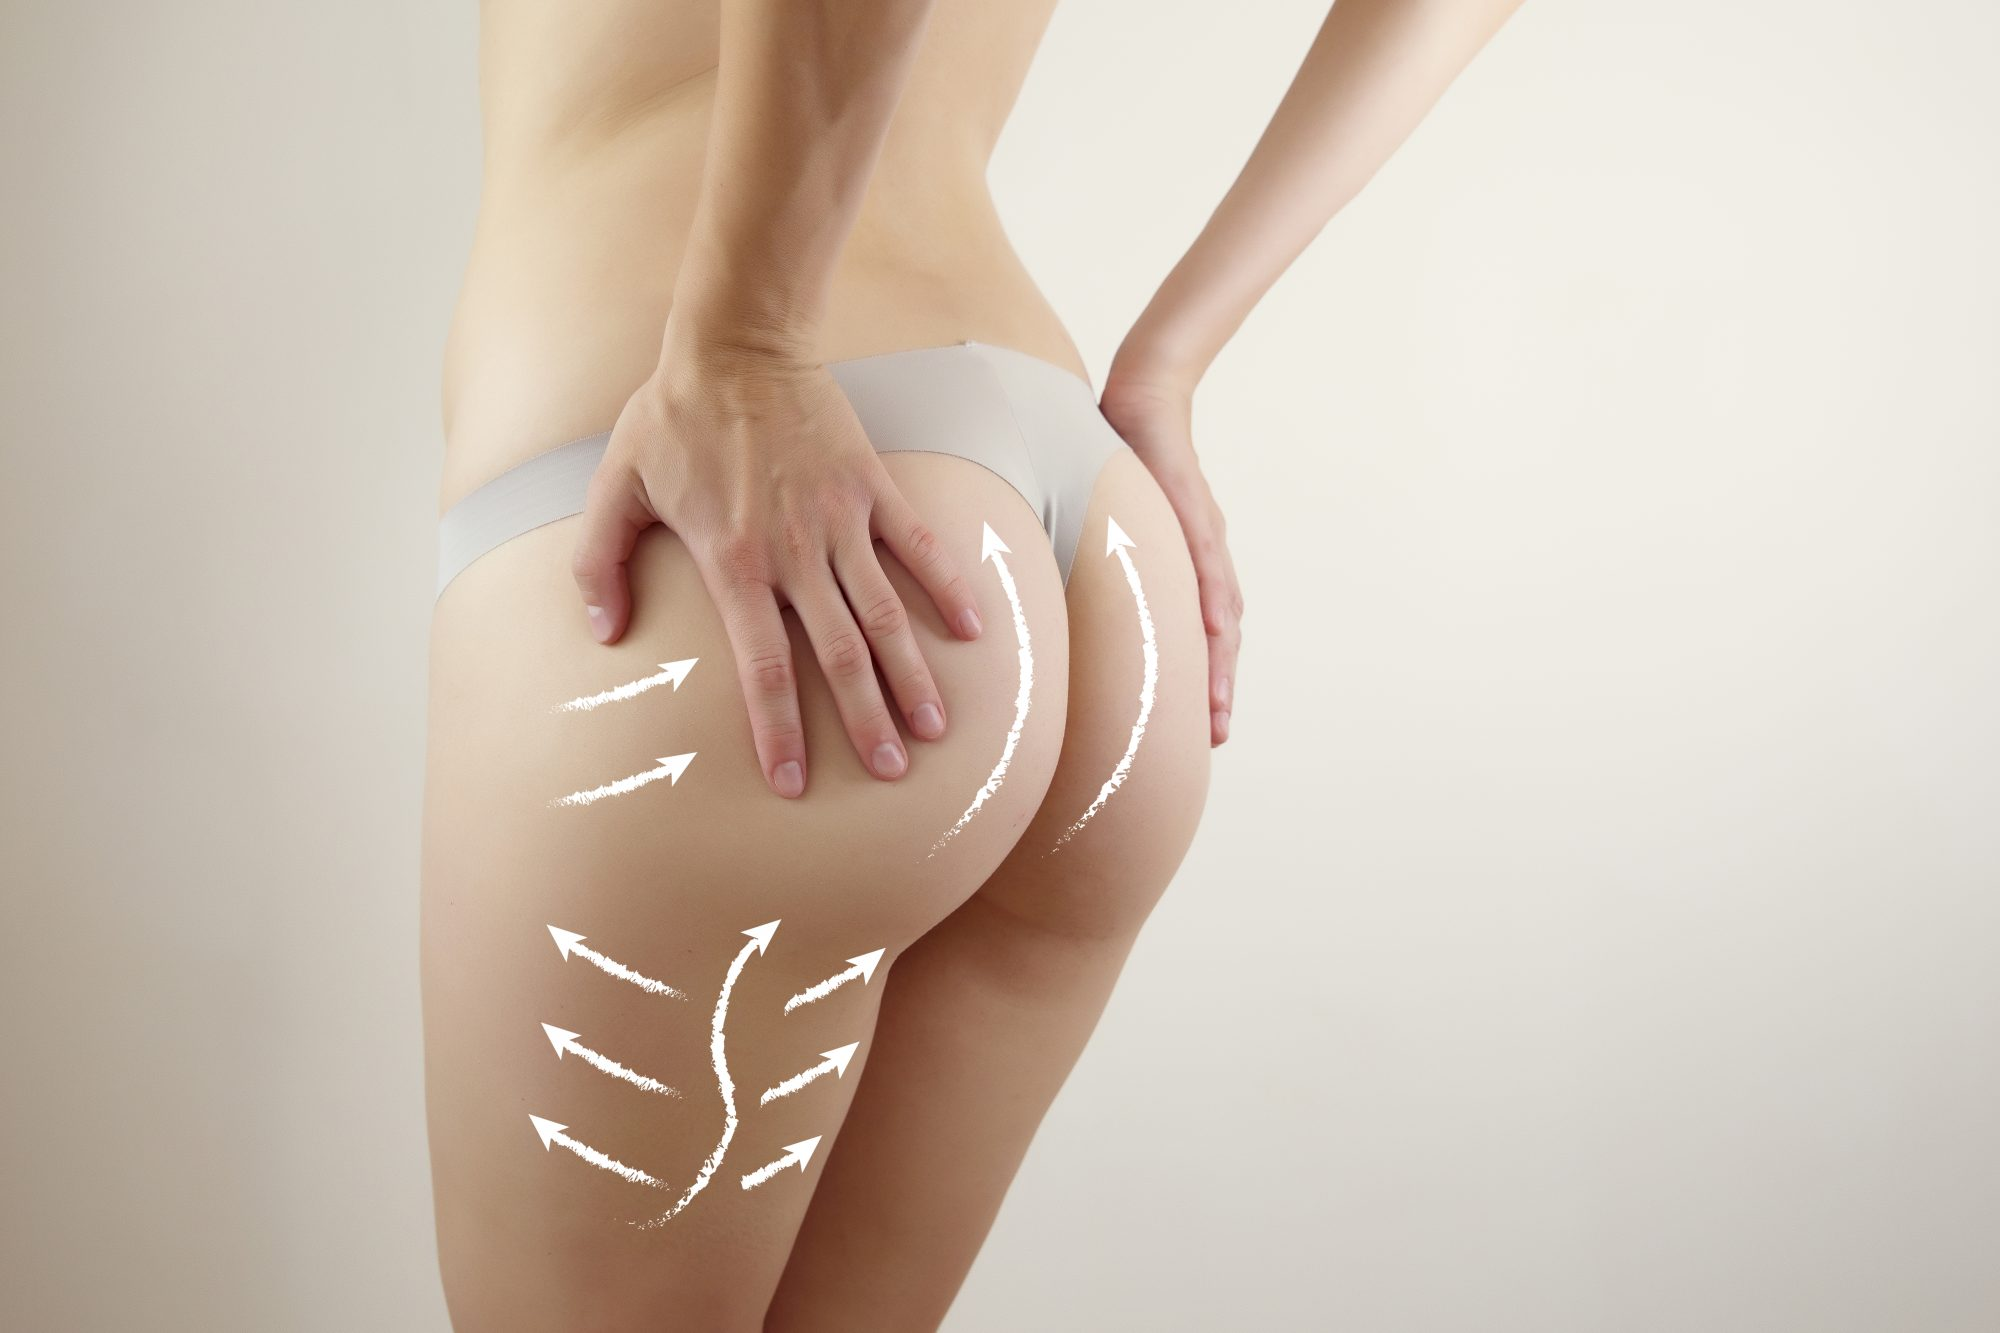 anti- cellulite therapy graphic visualisation on female body